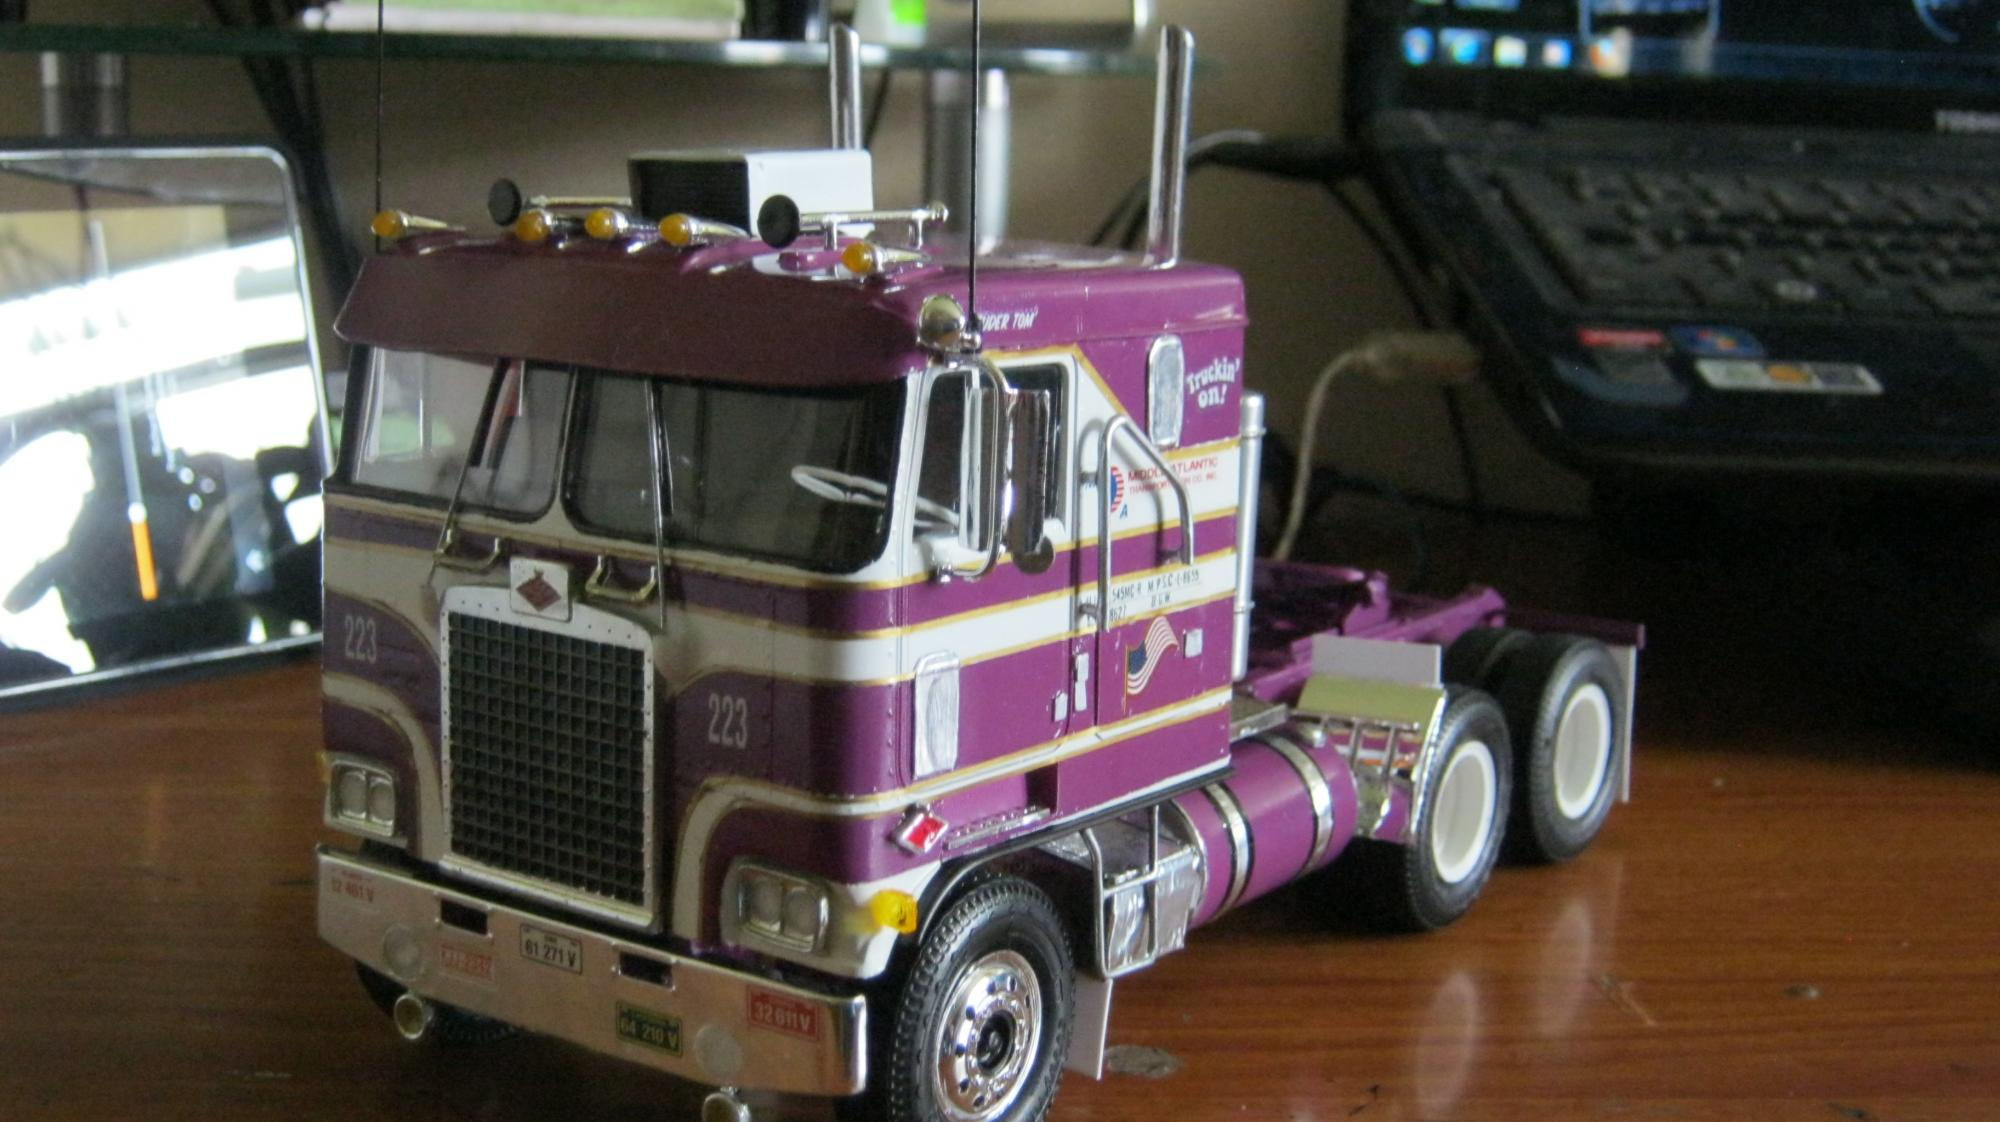 70s diamond reo cabover under glass big rigs model cars jpg112c7af0e8d10f trucks2012006umbgce4b6998f6b74b sciox Image collections